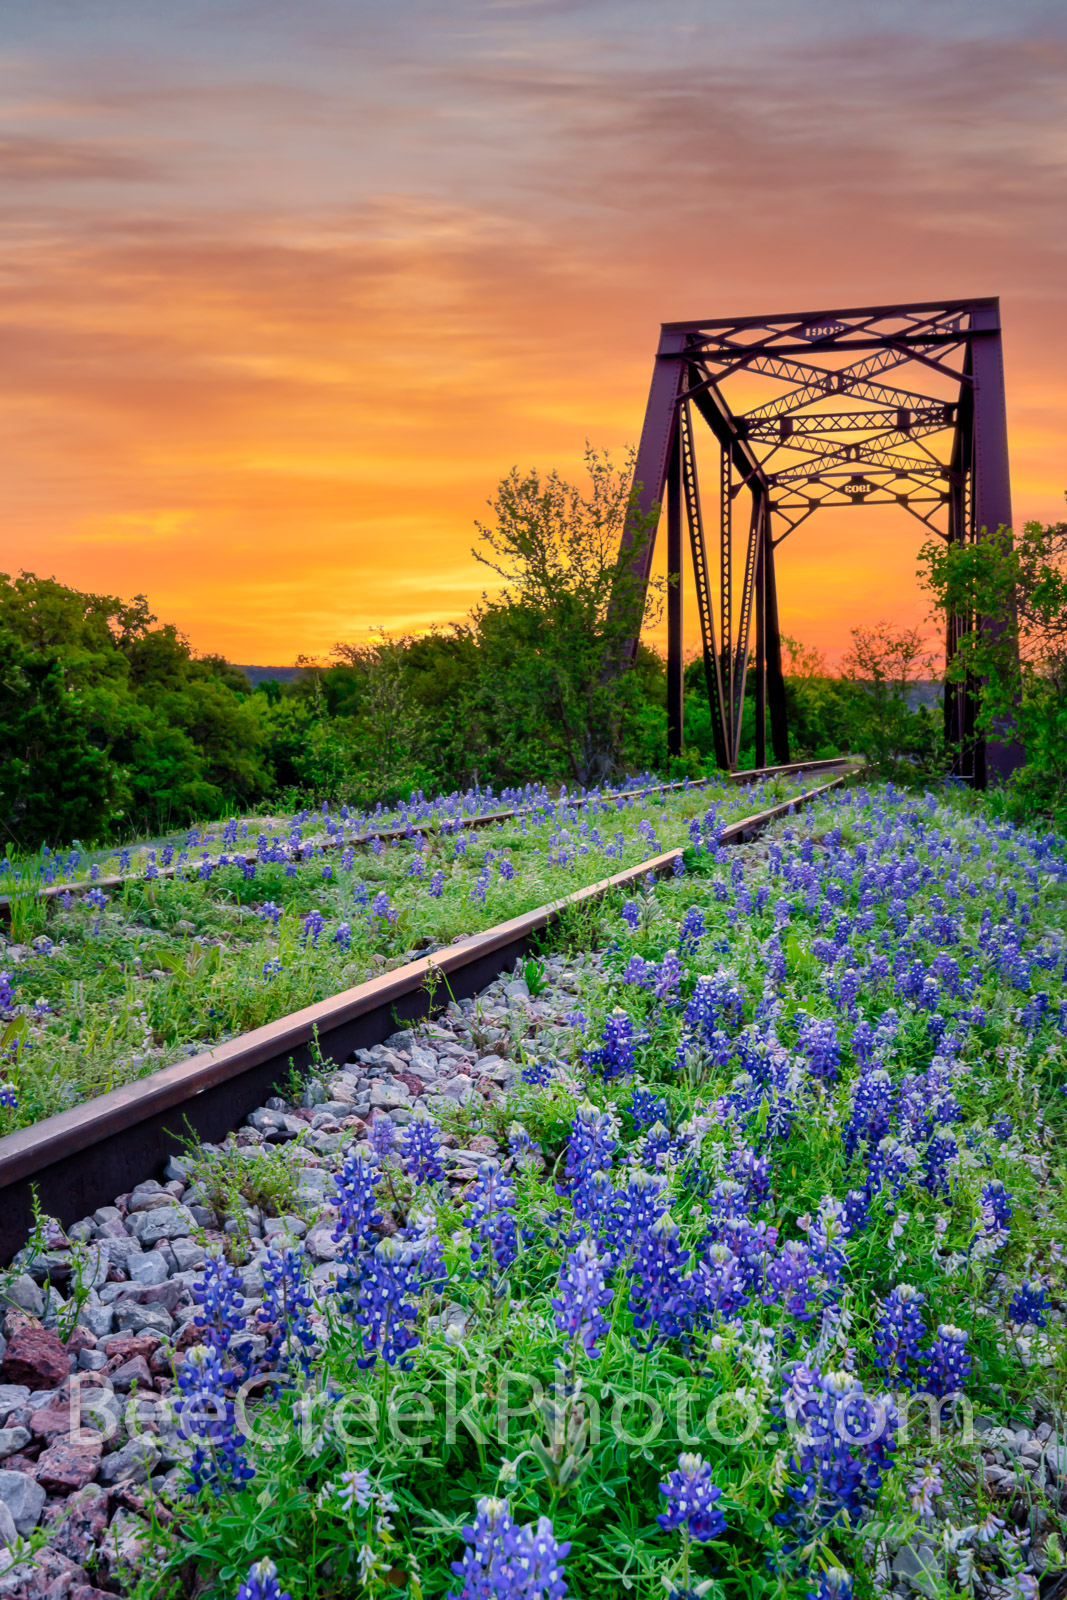 bluebonnet, texas bluebonnets, railroad tracks, tressel,  sunrise, texas hill country, bluebonnets, colorful sky, orange, orange sky, hill country, train tracks, sunset, vertical, photo